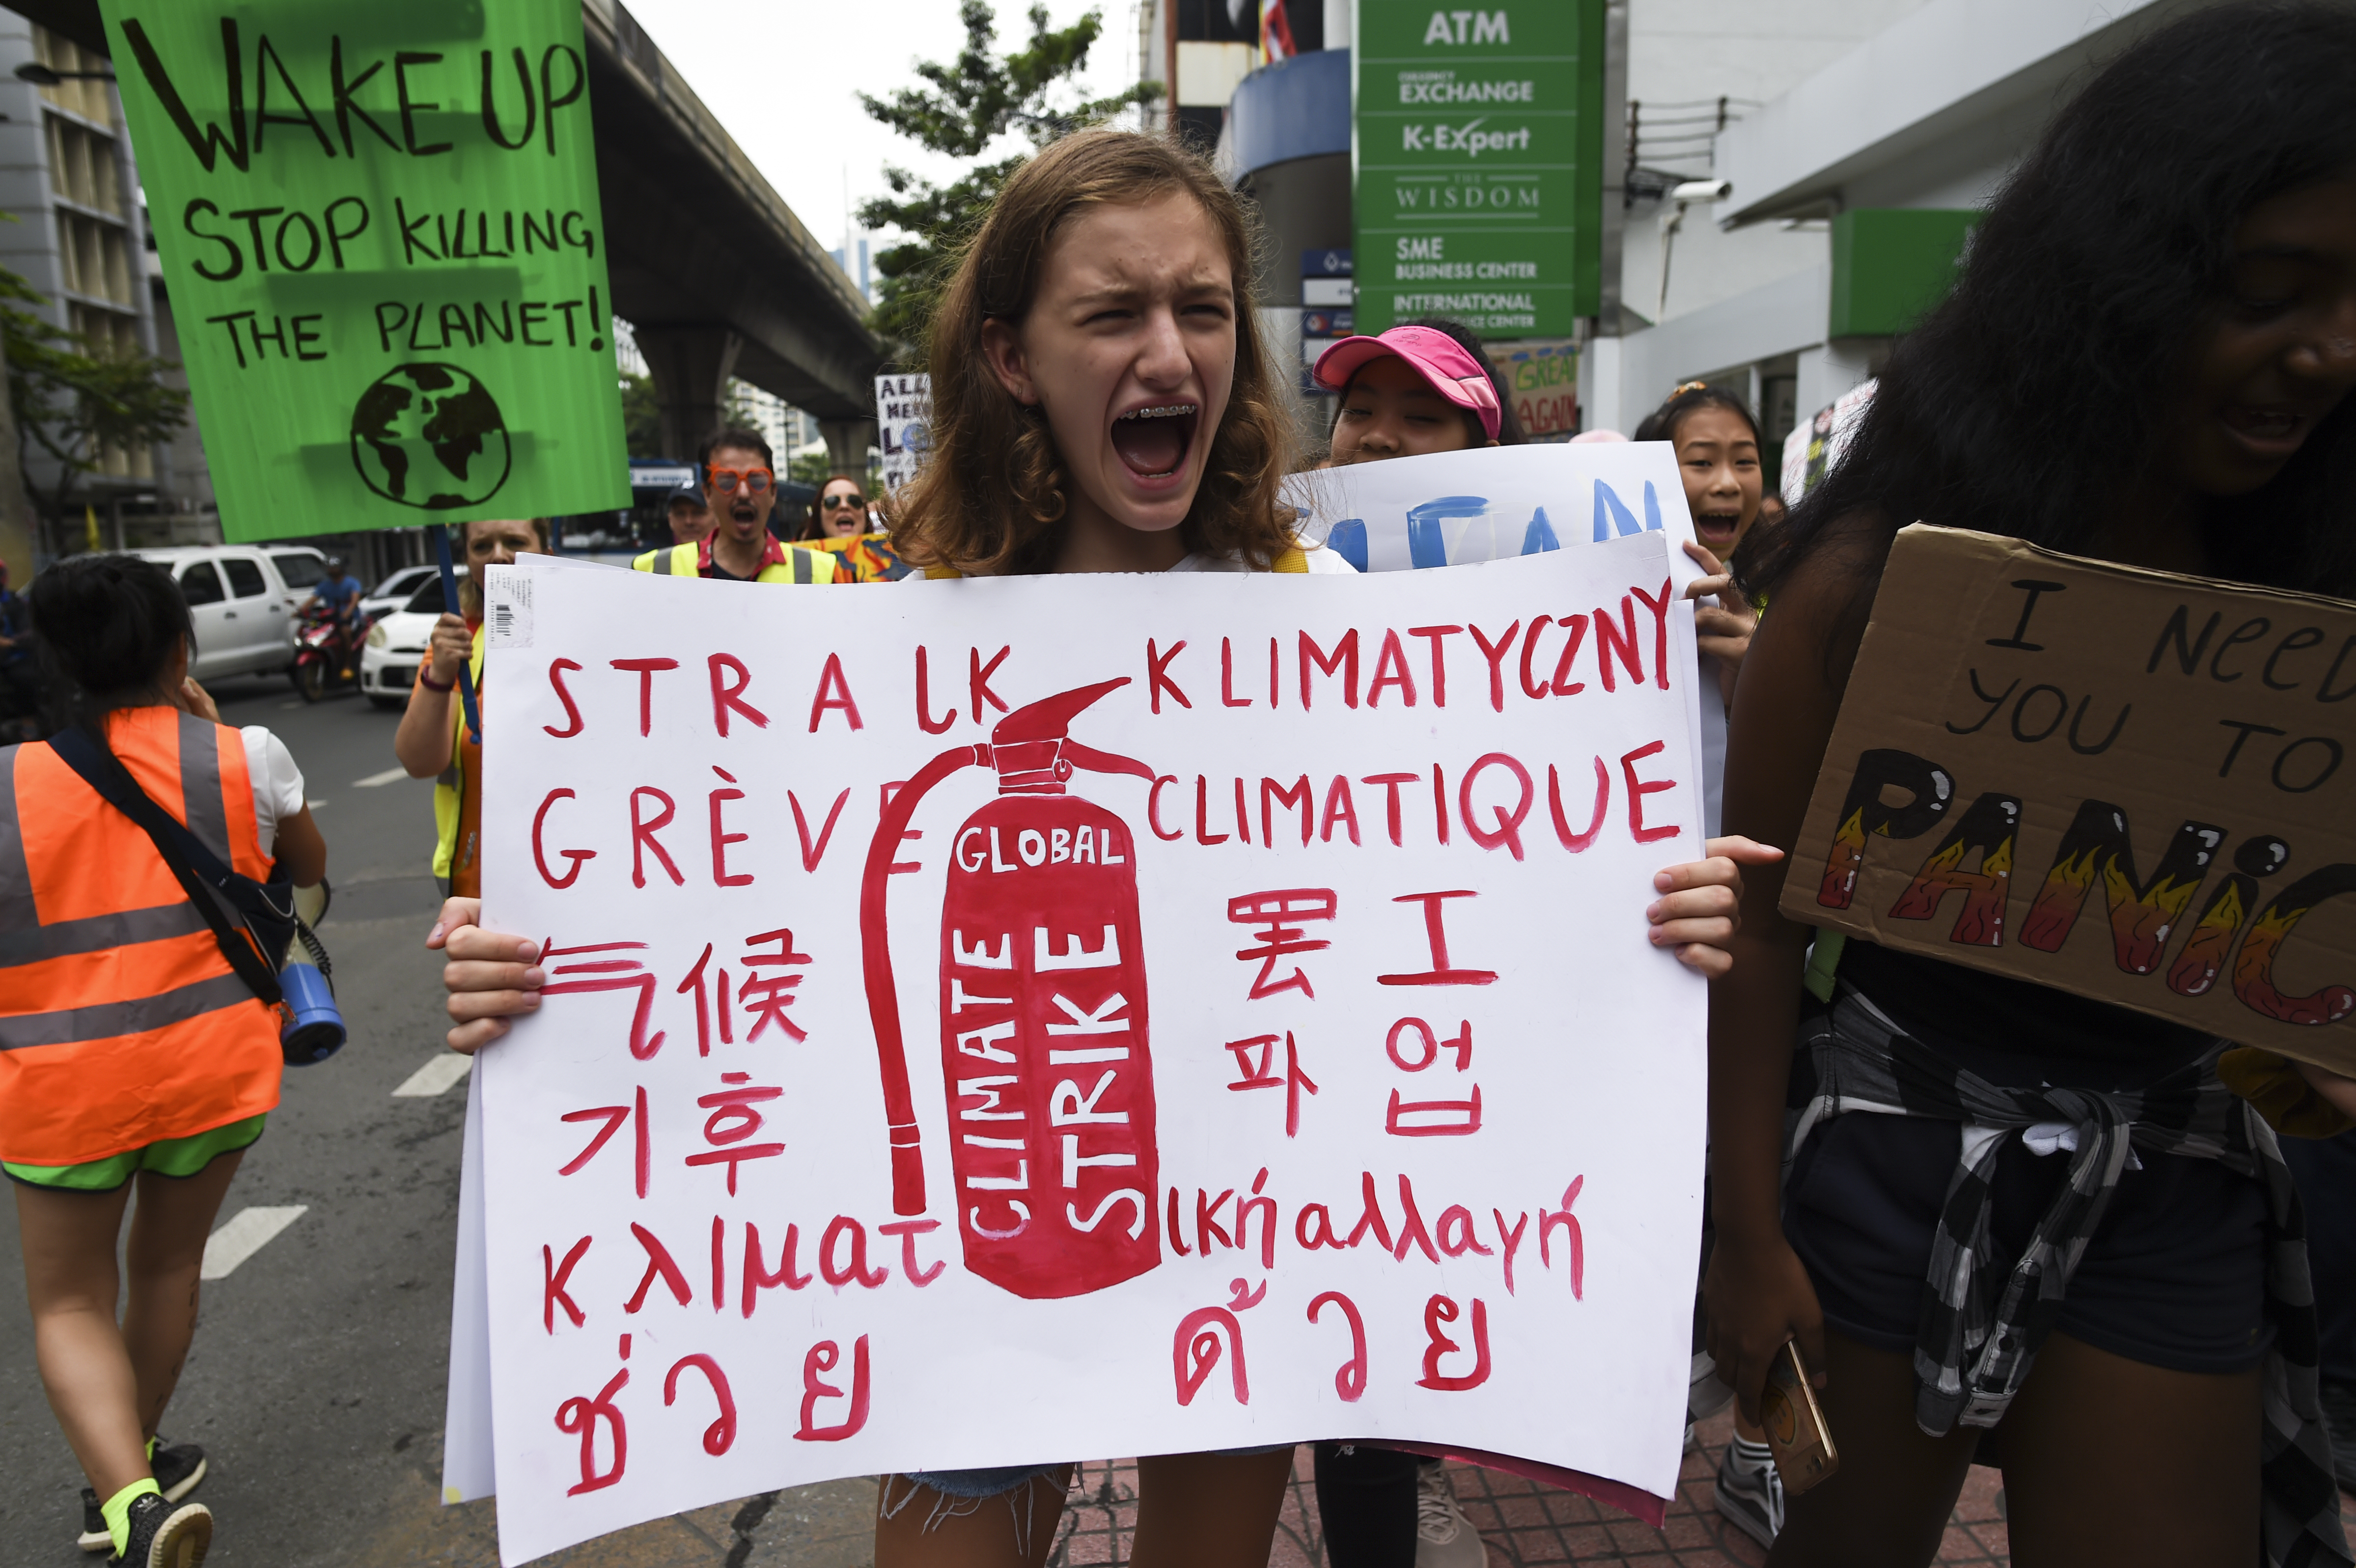 Environmental activists participate during the Global Strike 4 Climate event in Bangkok, Thailand, 20 September 2019. (Photo by Anusak Laowilas/NurPhoto via Getty Images)